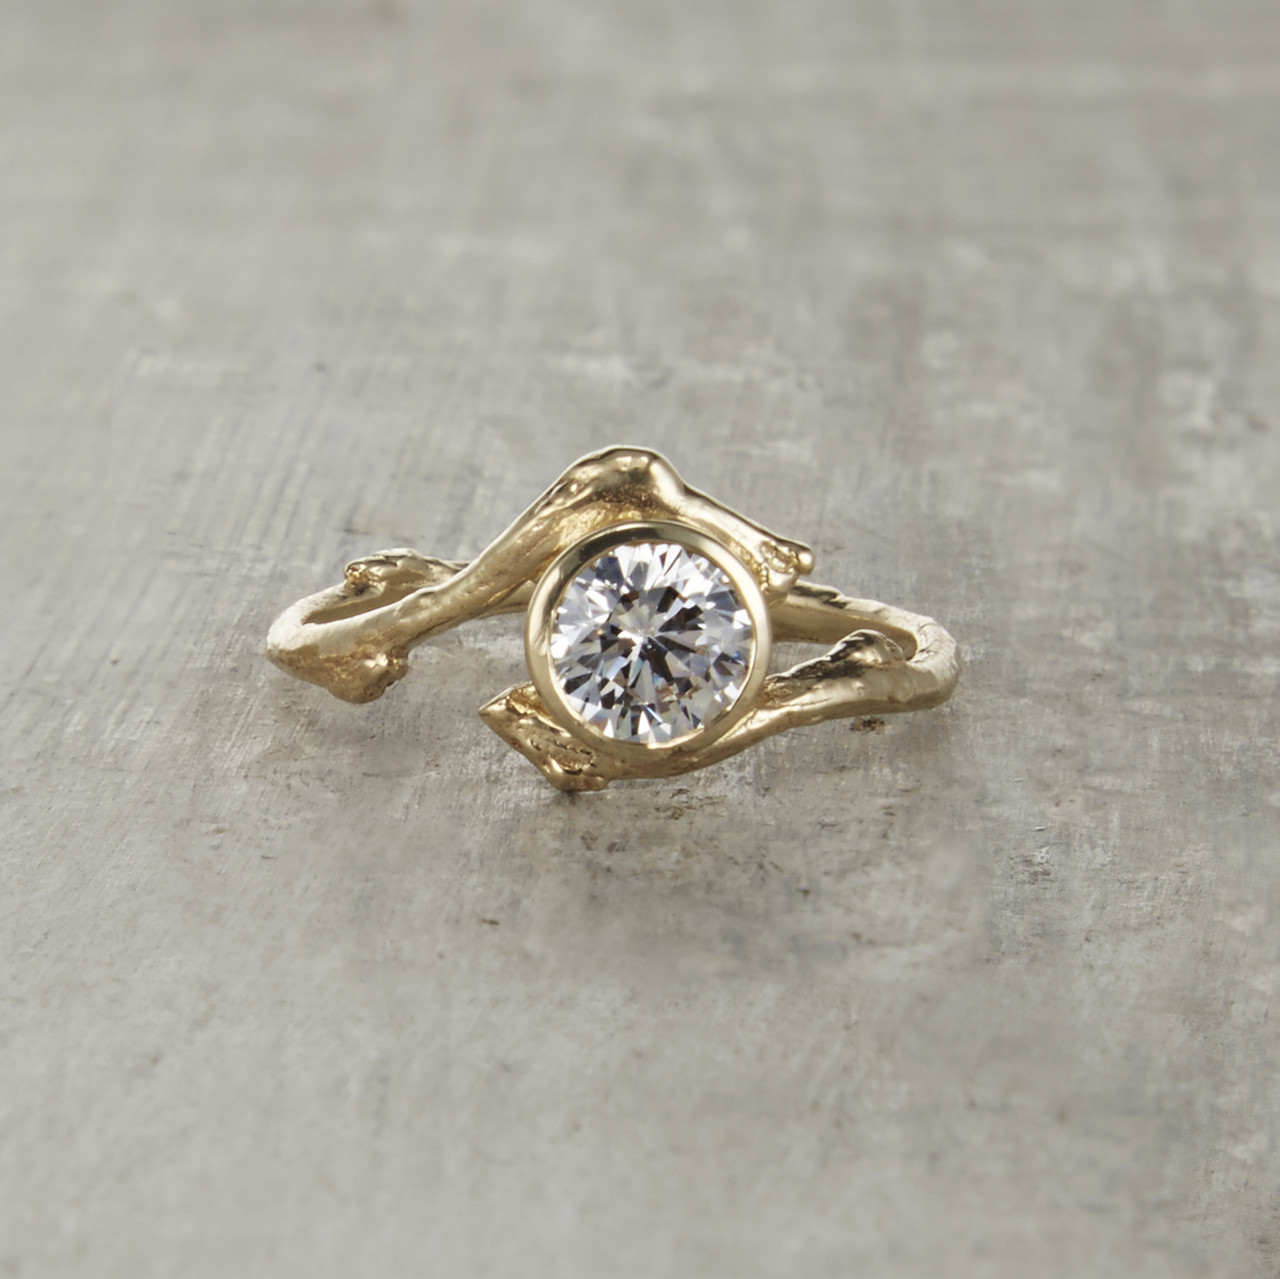 a silver centered made oxidized erstwhileco on rings in images ring accented with carat pinterest single rose of repurposed cut engagement and carats diamond gold diamonds set best